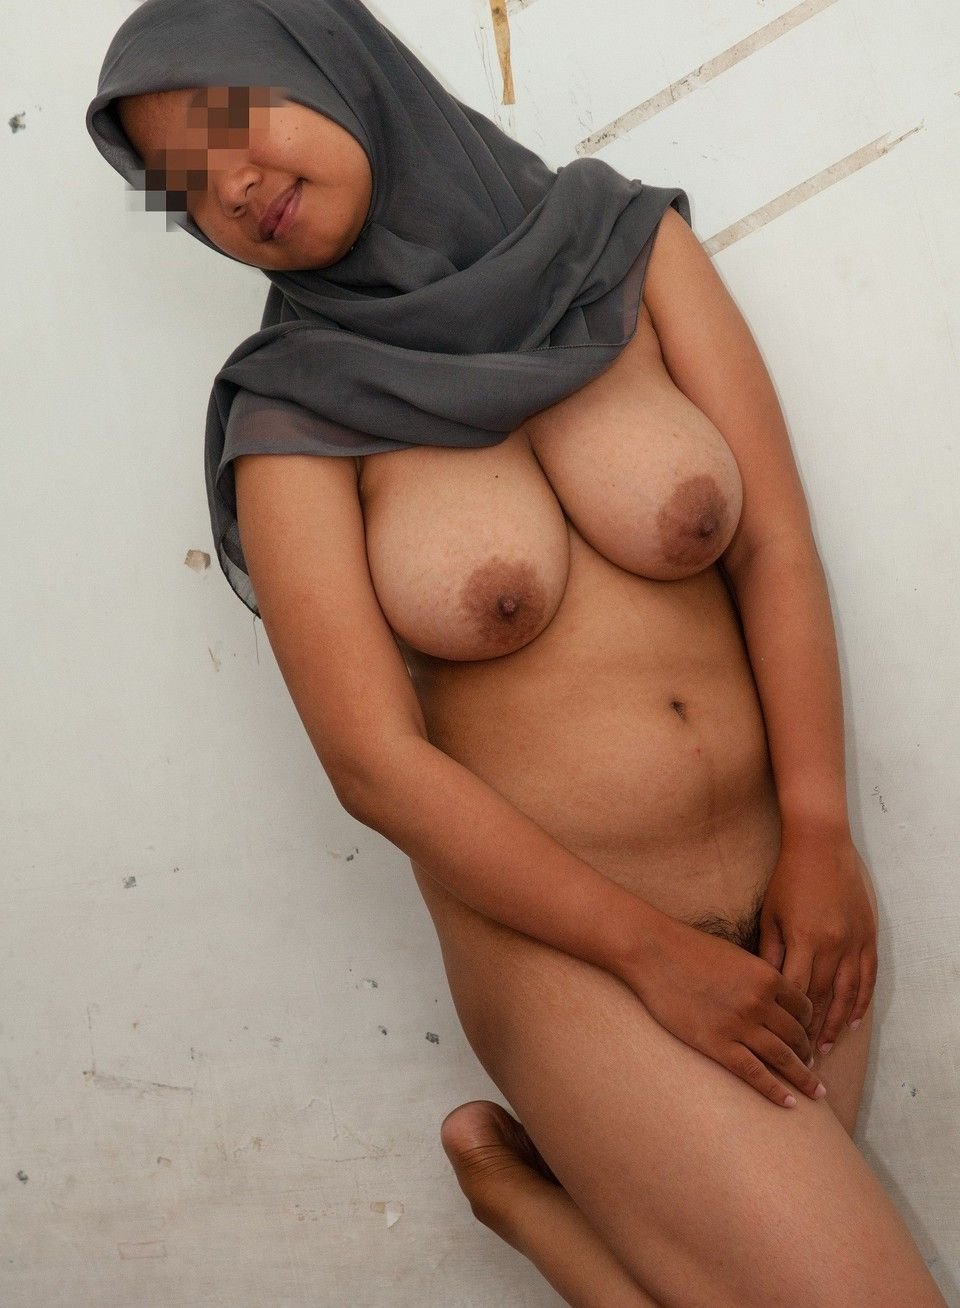 xxx-porn-photos-of-muslim-women-female-albinos-nude